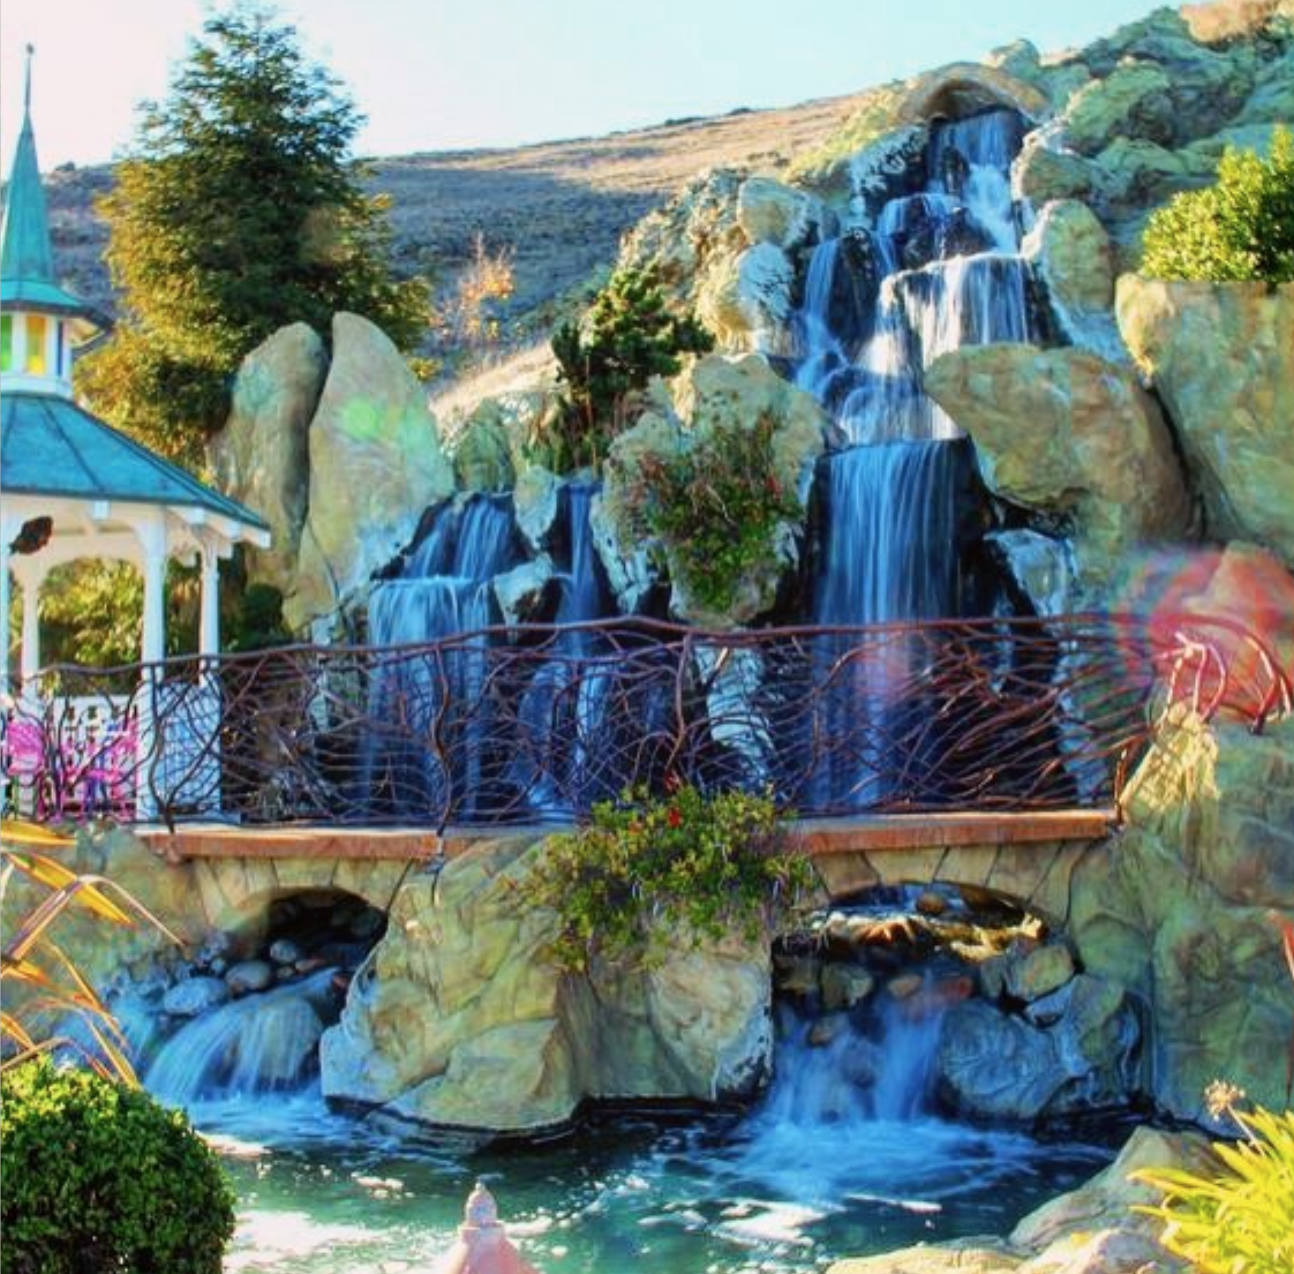 They have a pool with a waterfall.